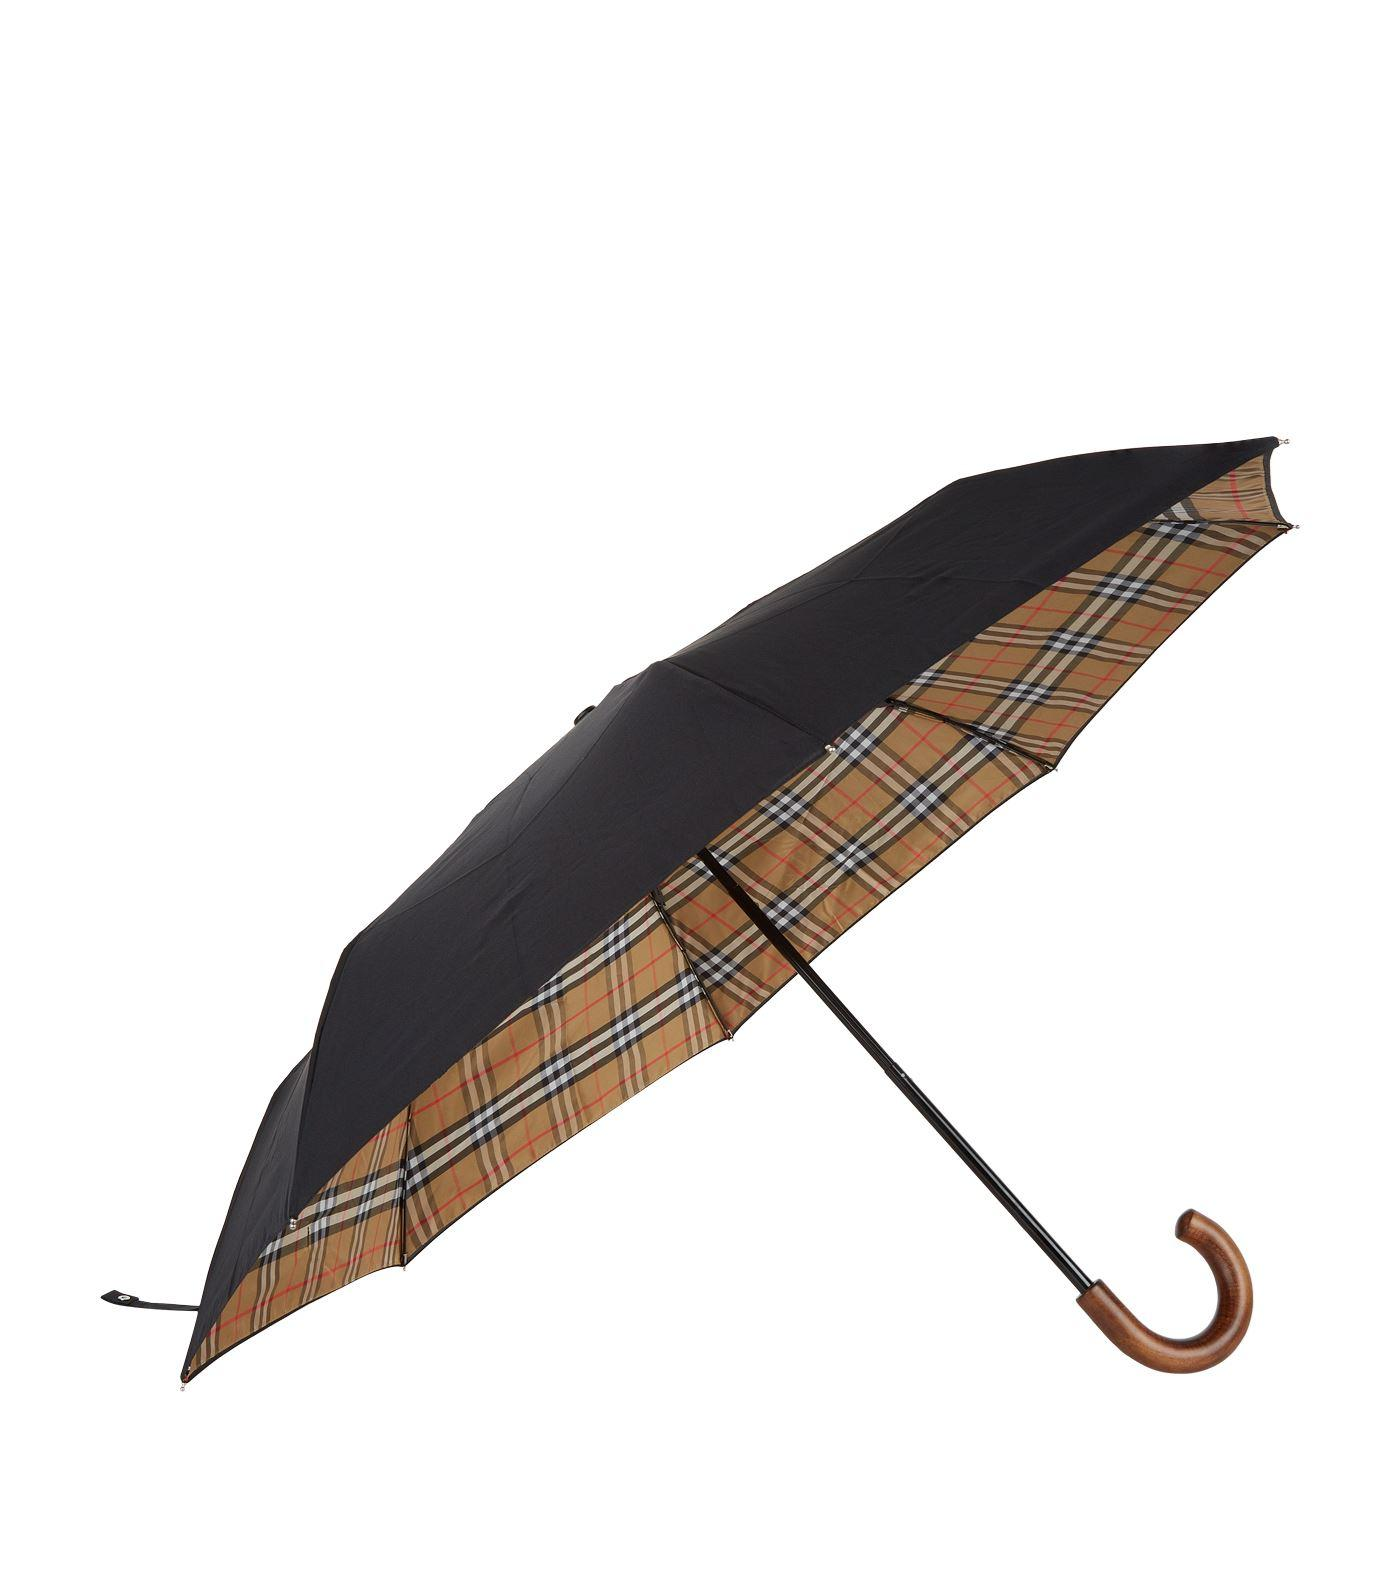 4416e041e06 Burberry Vintage Check Umbrella in Black - Lyst